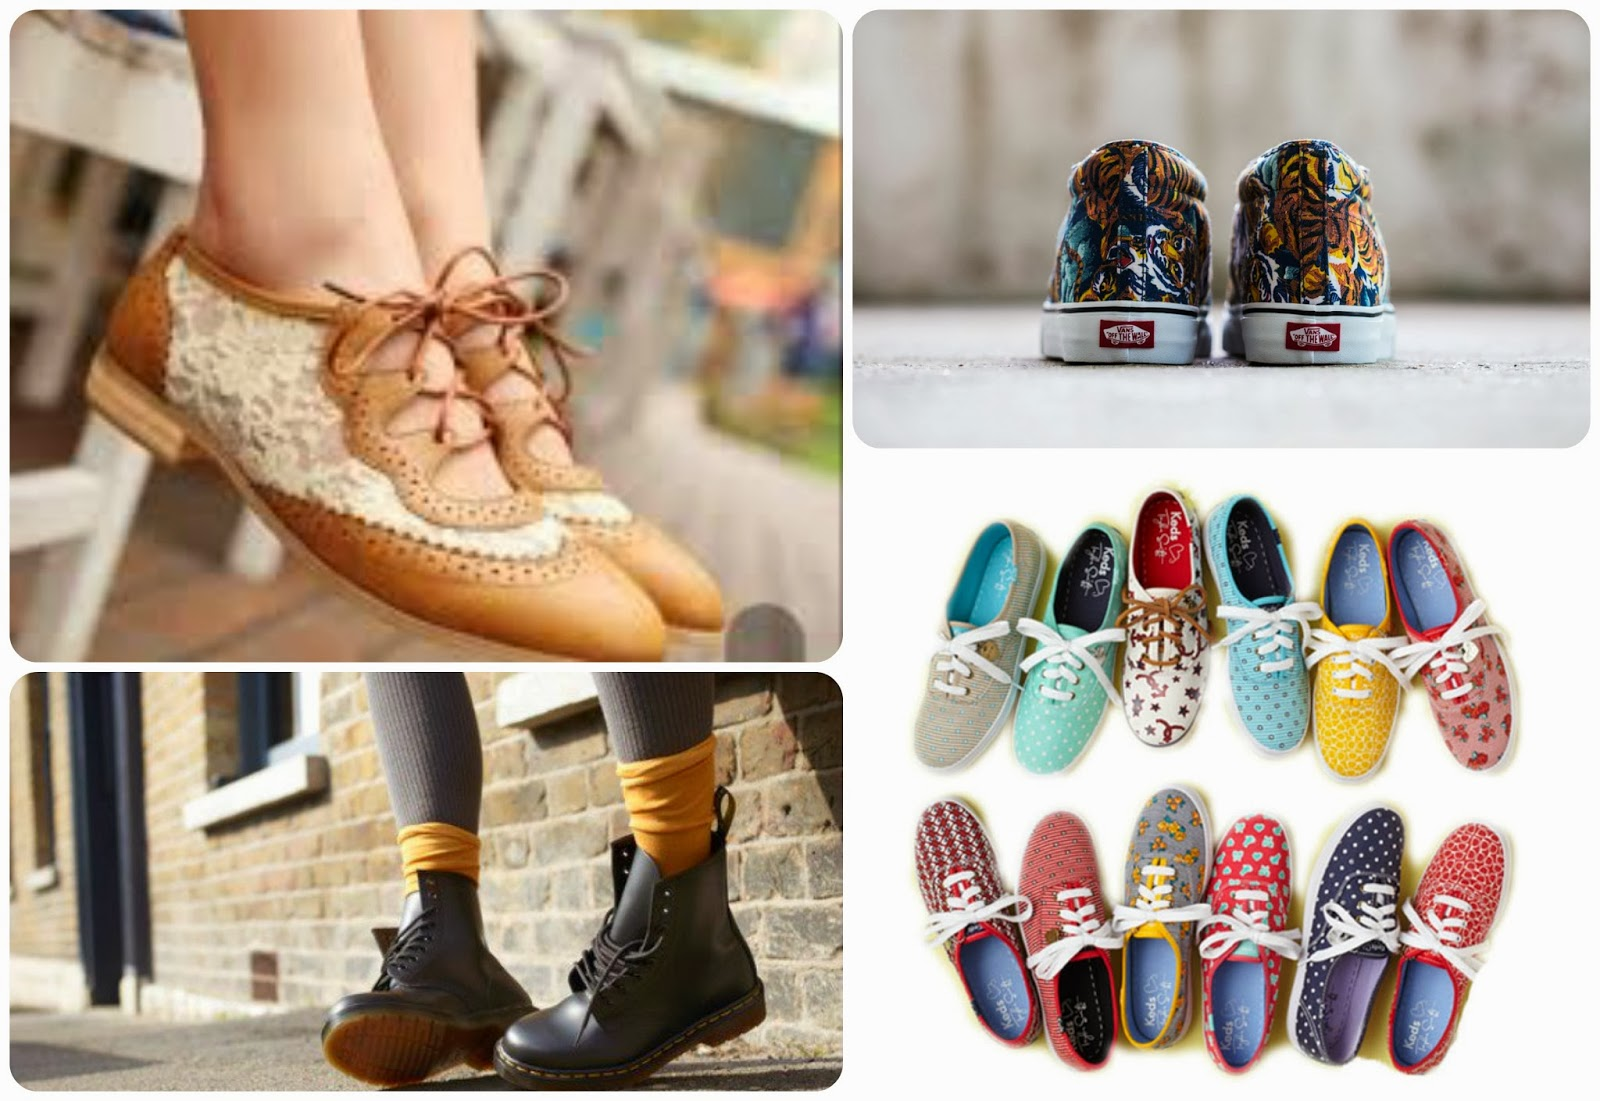 Shoes hipster girl , Zapatos de la chica hipster , Oxford, vans, converse,